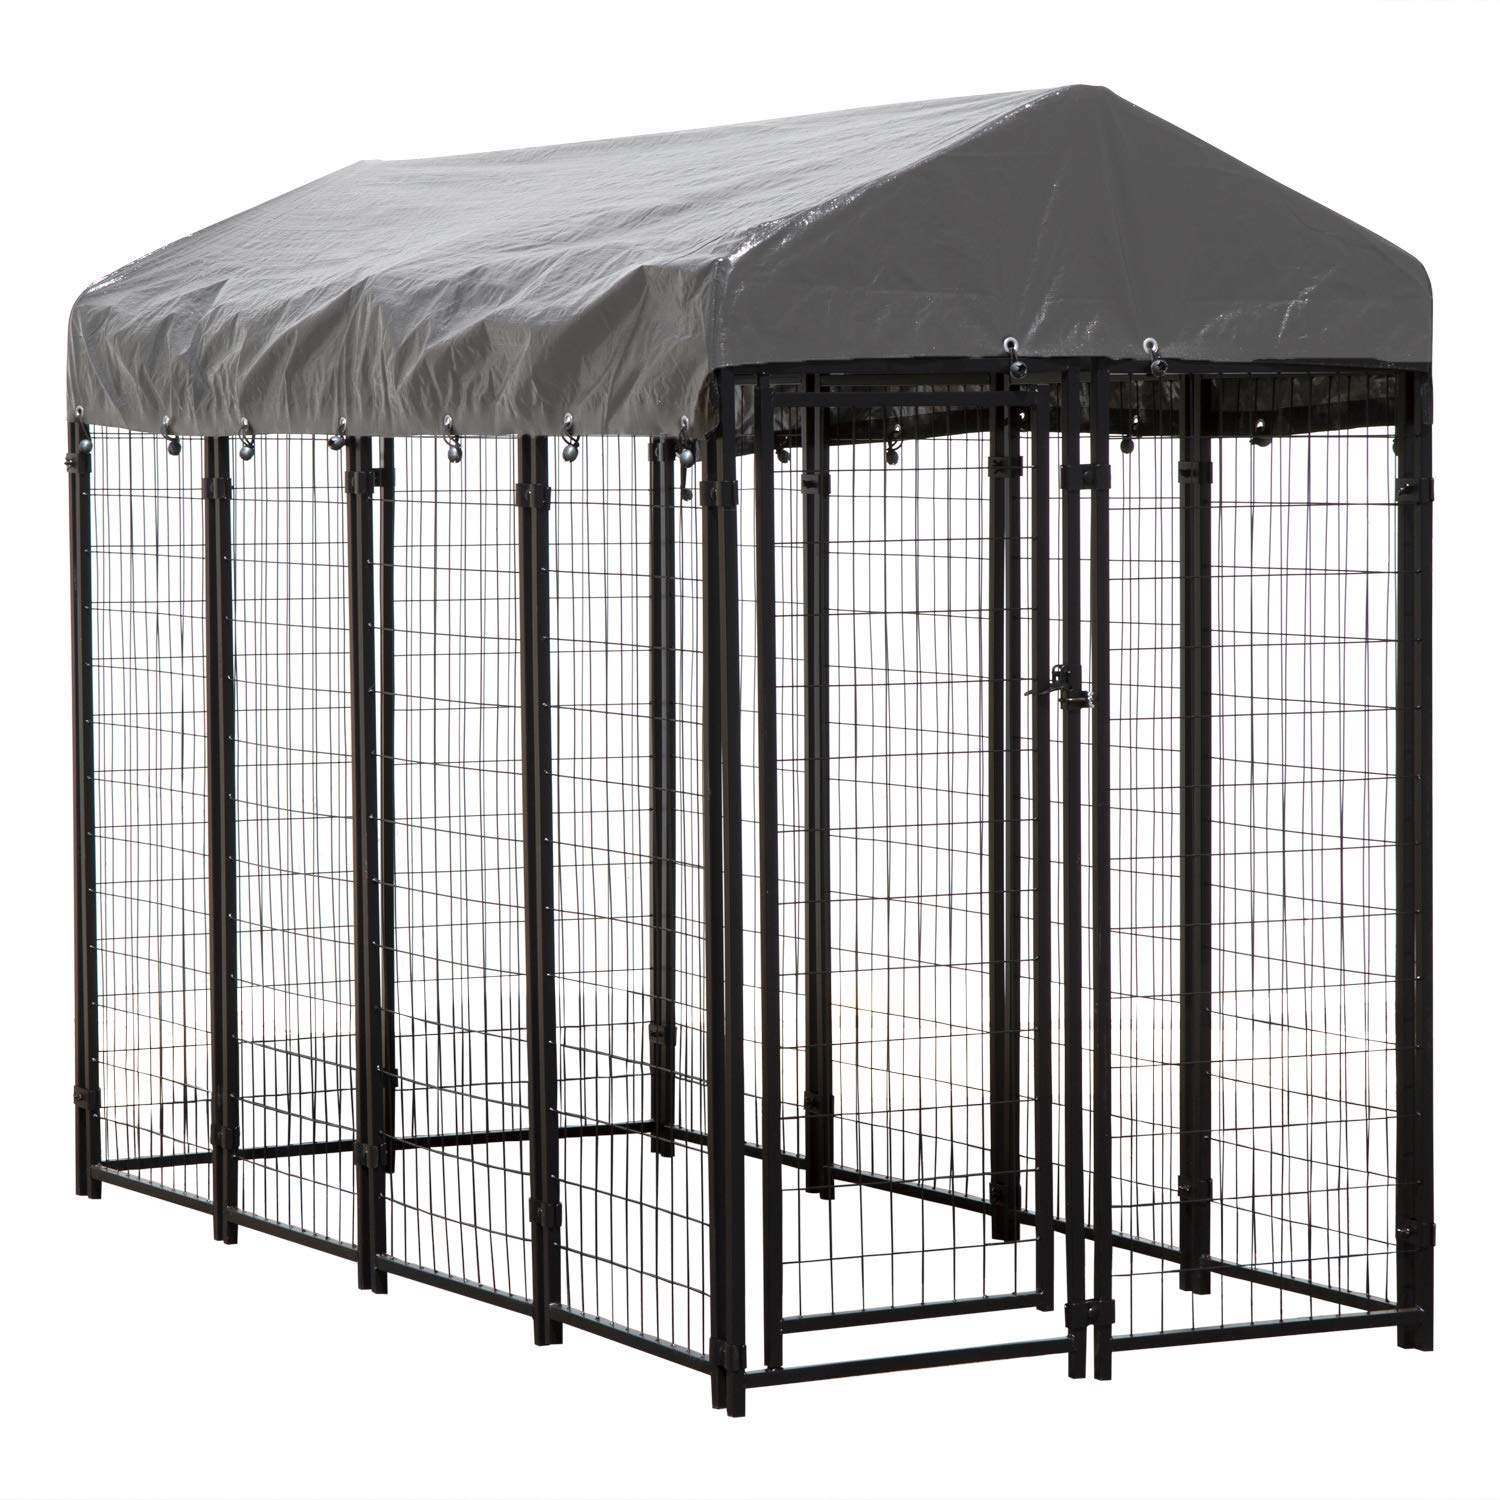 Houseables Dog Kennel, Large Dog Crate, 8 x 4 x 6 ft, Metal, Welded, Pet Cage, Heavy Duty Playpen, Outdoor/Outside Dogs House, Animal Runs, Yard Wire Fence, Crates for Dogs, Big Play Pen with Cover by Houseables